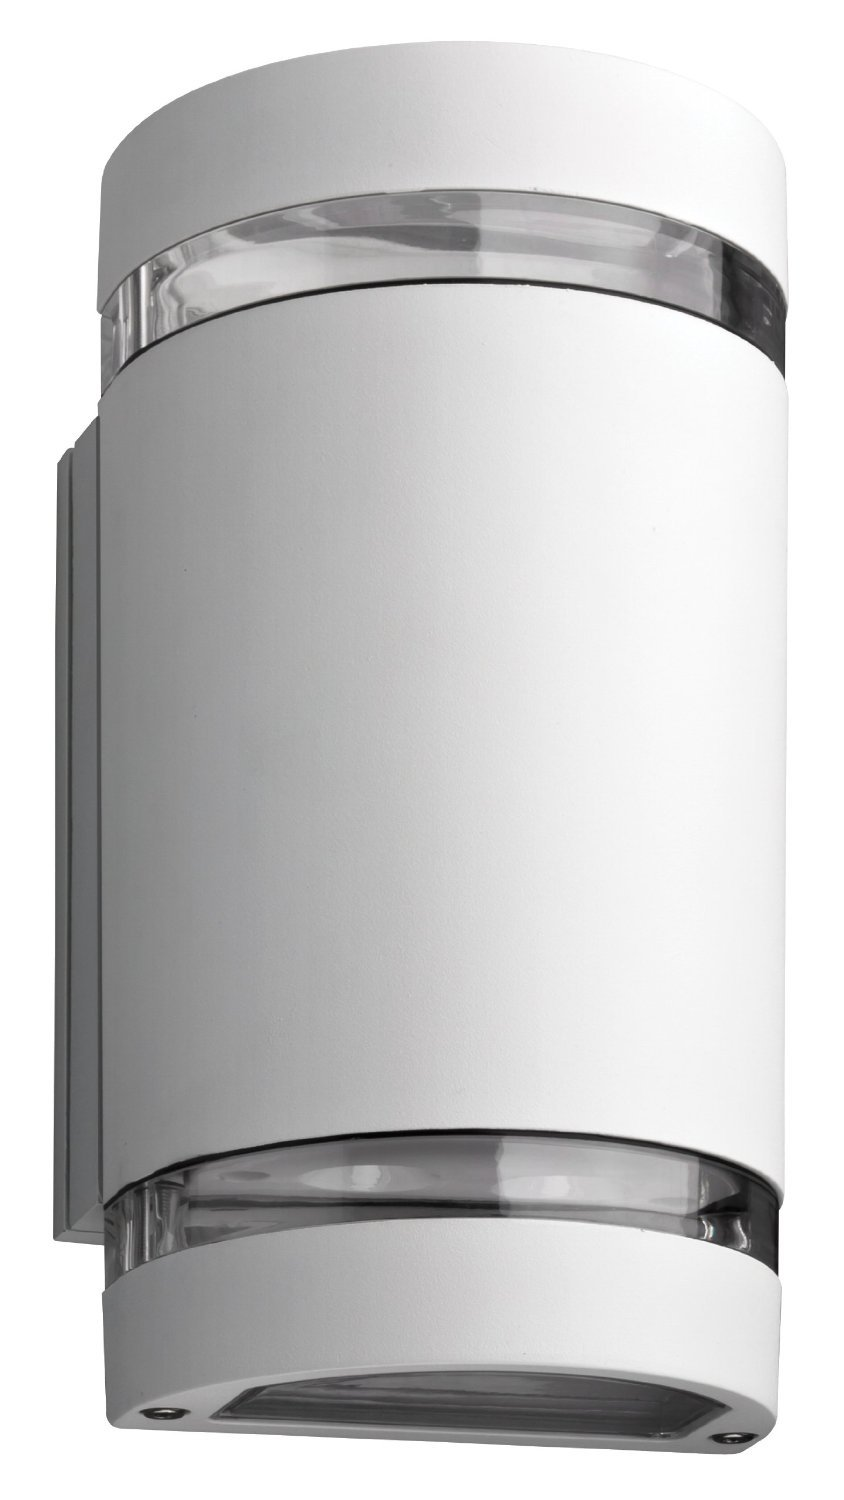 Lithonia Lighting OLLWU WH M6 Outdoor LED Wall Cylinder 2-Light Up and Down - Cast-aluminum housing with corrosion-resistant paint in white Polycarbonate lens protects the LED from moisture and dirt 4000K CCT LEDs - patio, outdoor-lights, outdoor-decor - 61l3whyOooL -